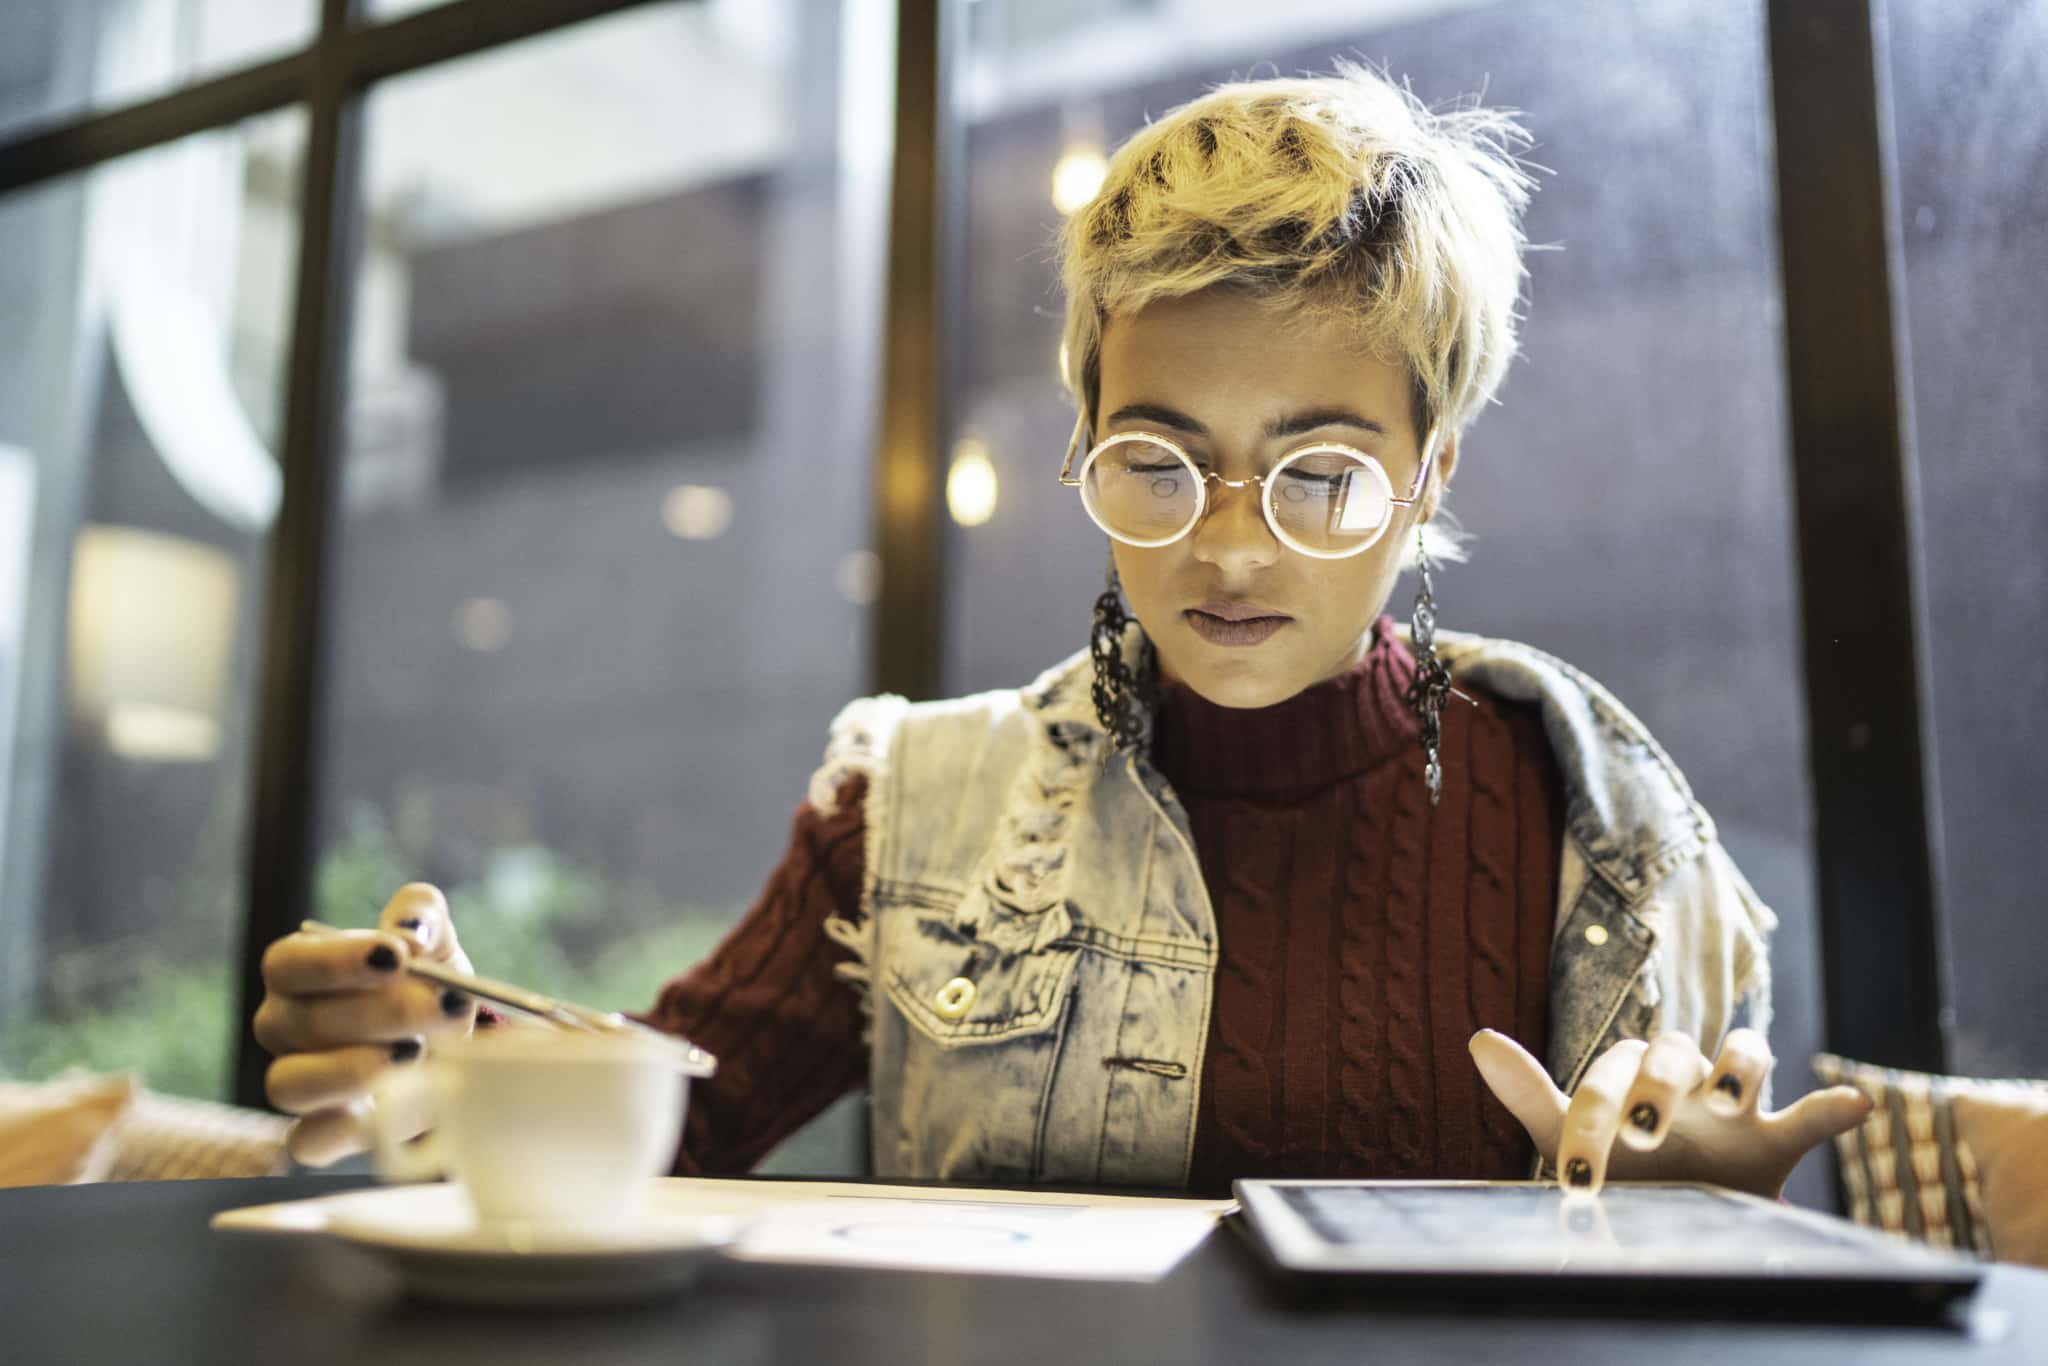 A woman reviews business reports on paper and on a tablet.